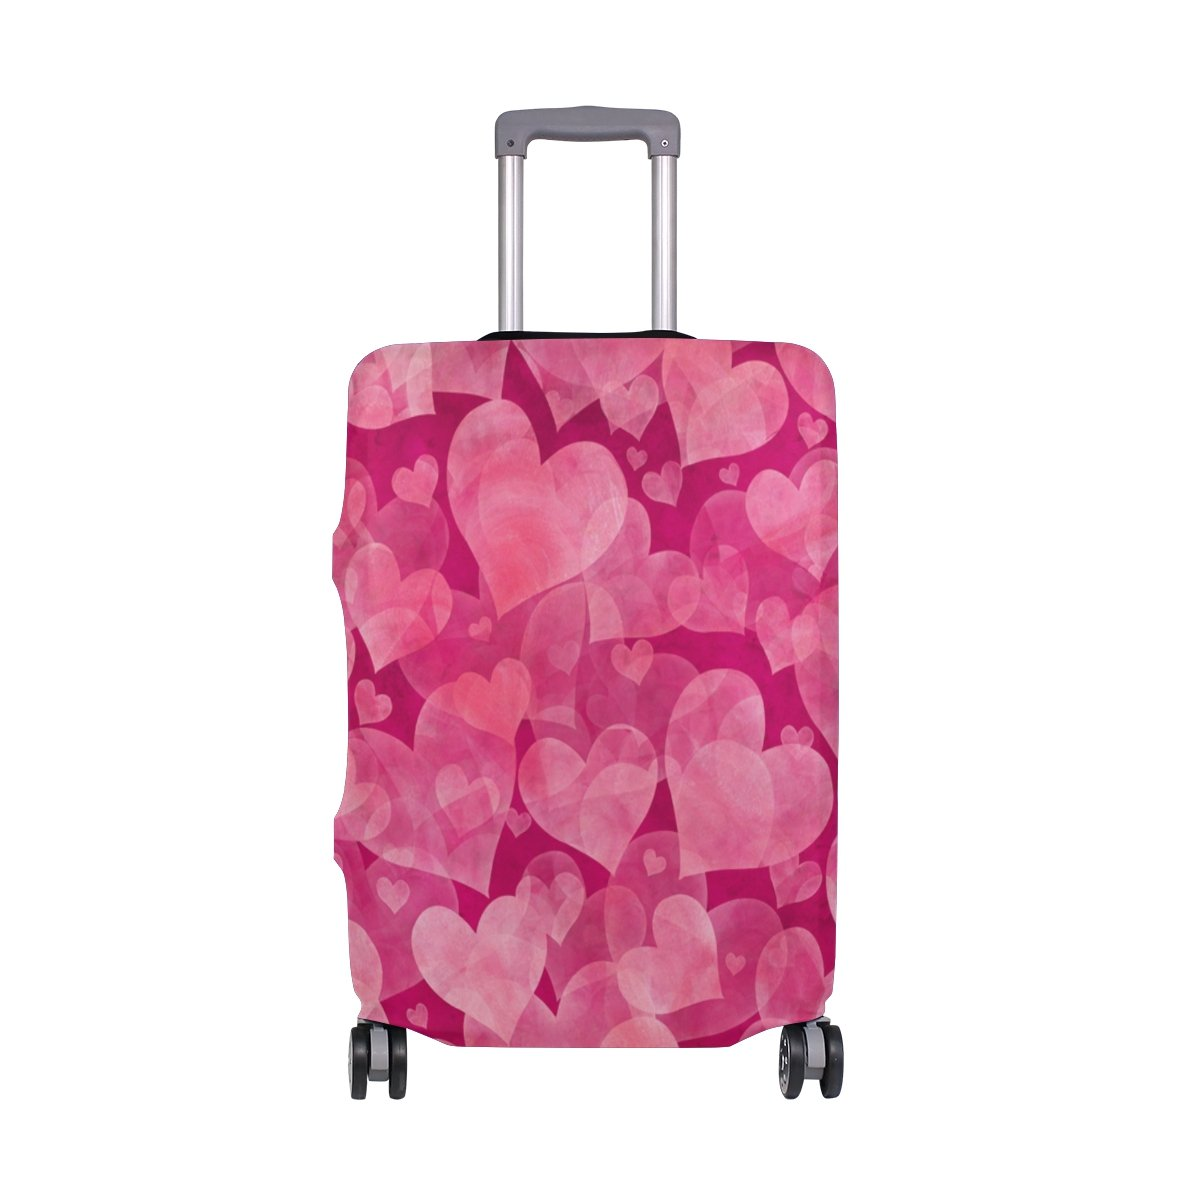 My Daily Hearts Valentine's Day Wedding Luggage Cover Fits 18-22 Inch Suitcase Spandex Travel Protector S